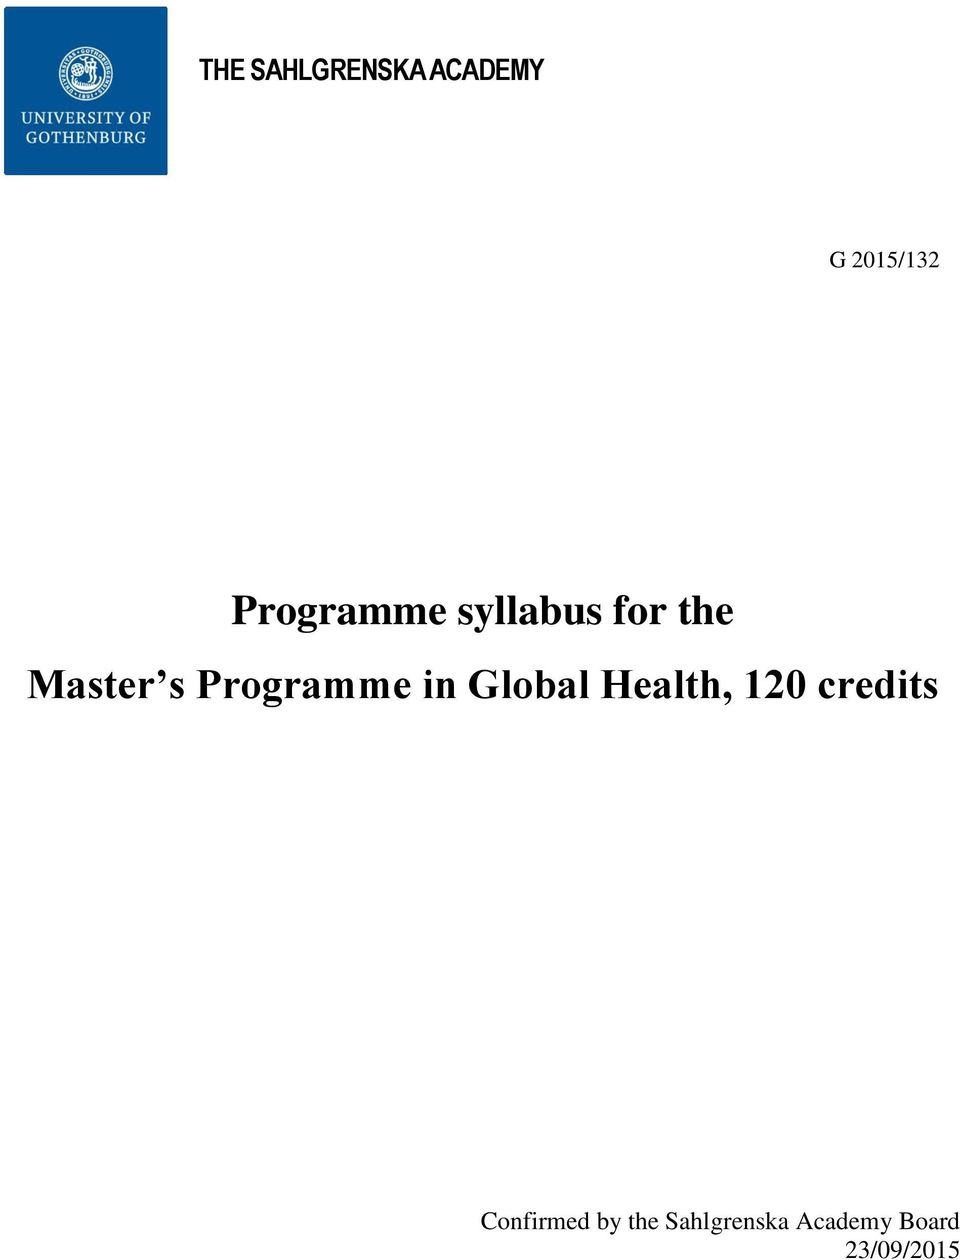 Programme in Global Health, 120 credits